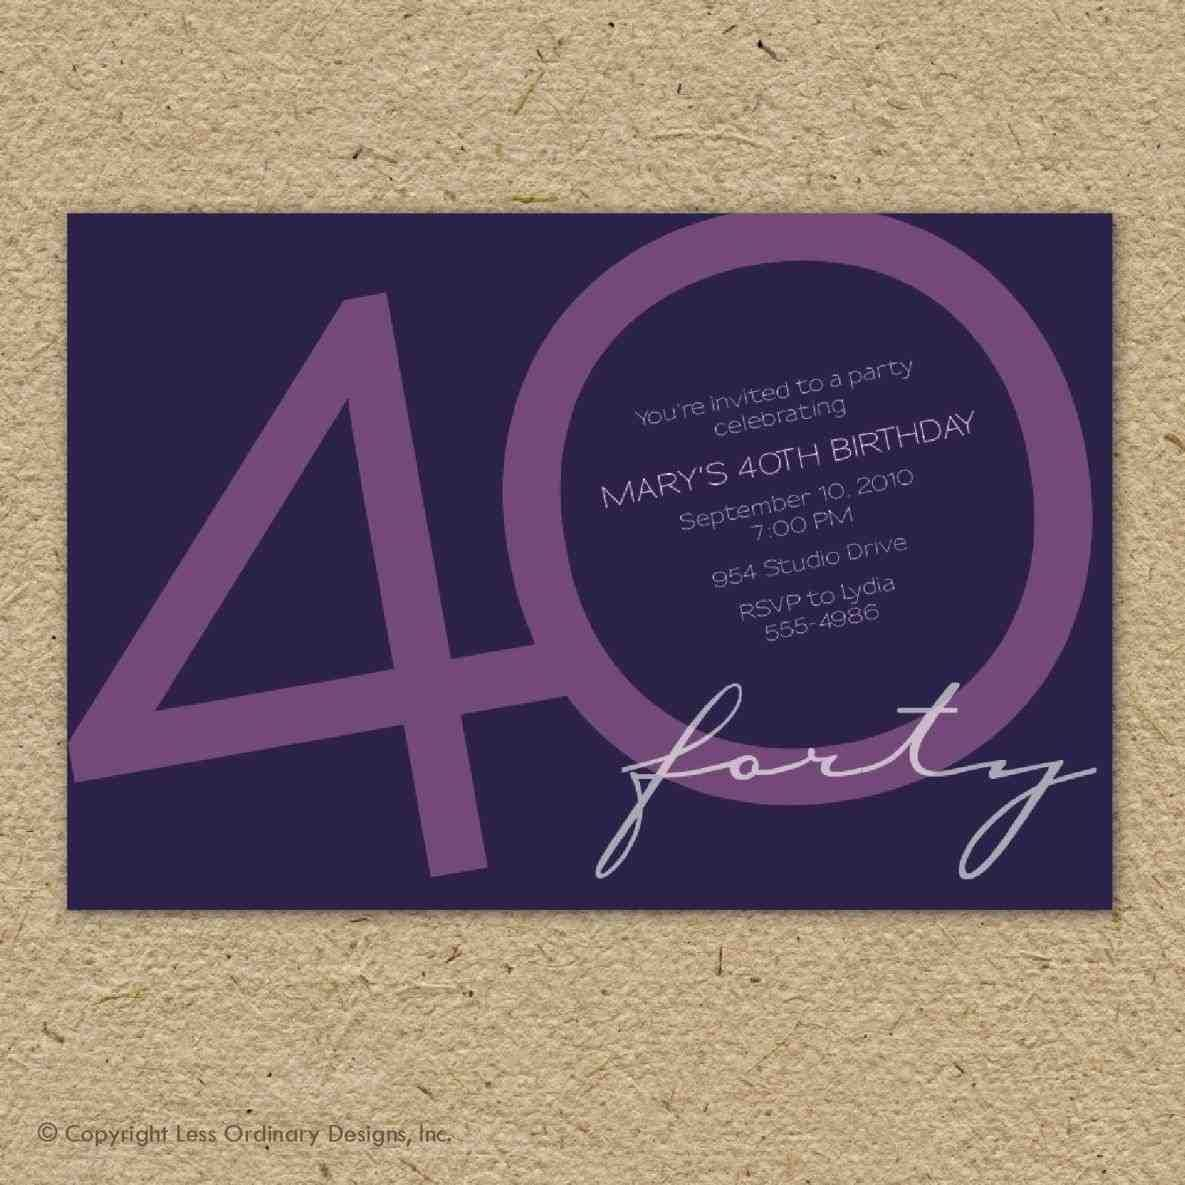 50th Birthday Balloon Table Centerpiece In Purple And Silver Disco Party Invitations Free Get Inspired To Create Your Own Invitation